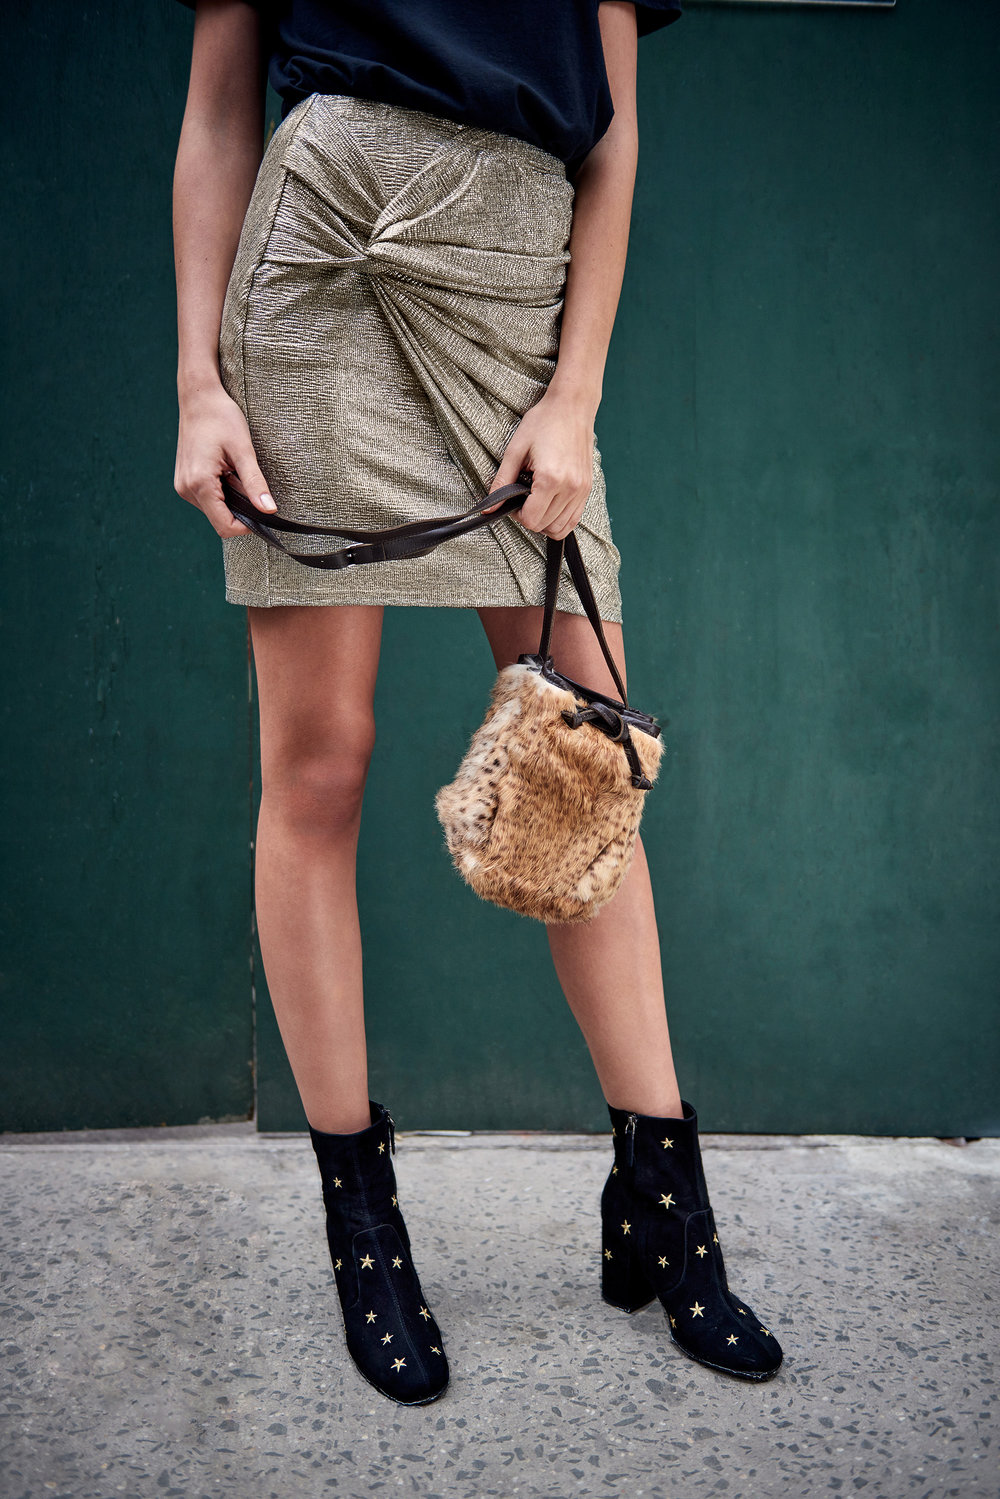 Adna Metallic Gold Mini Skirt & Subra Embroidered Stars Ankle Boots - Black & The Mini Colonia Bucket Bag - Fluffy Cheetah